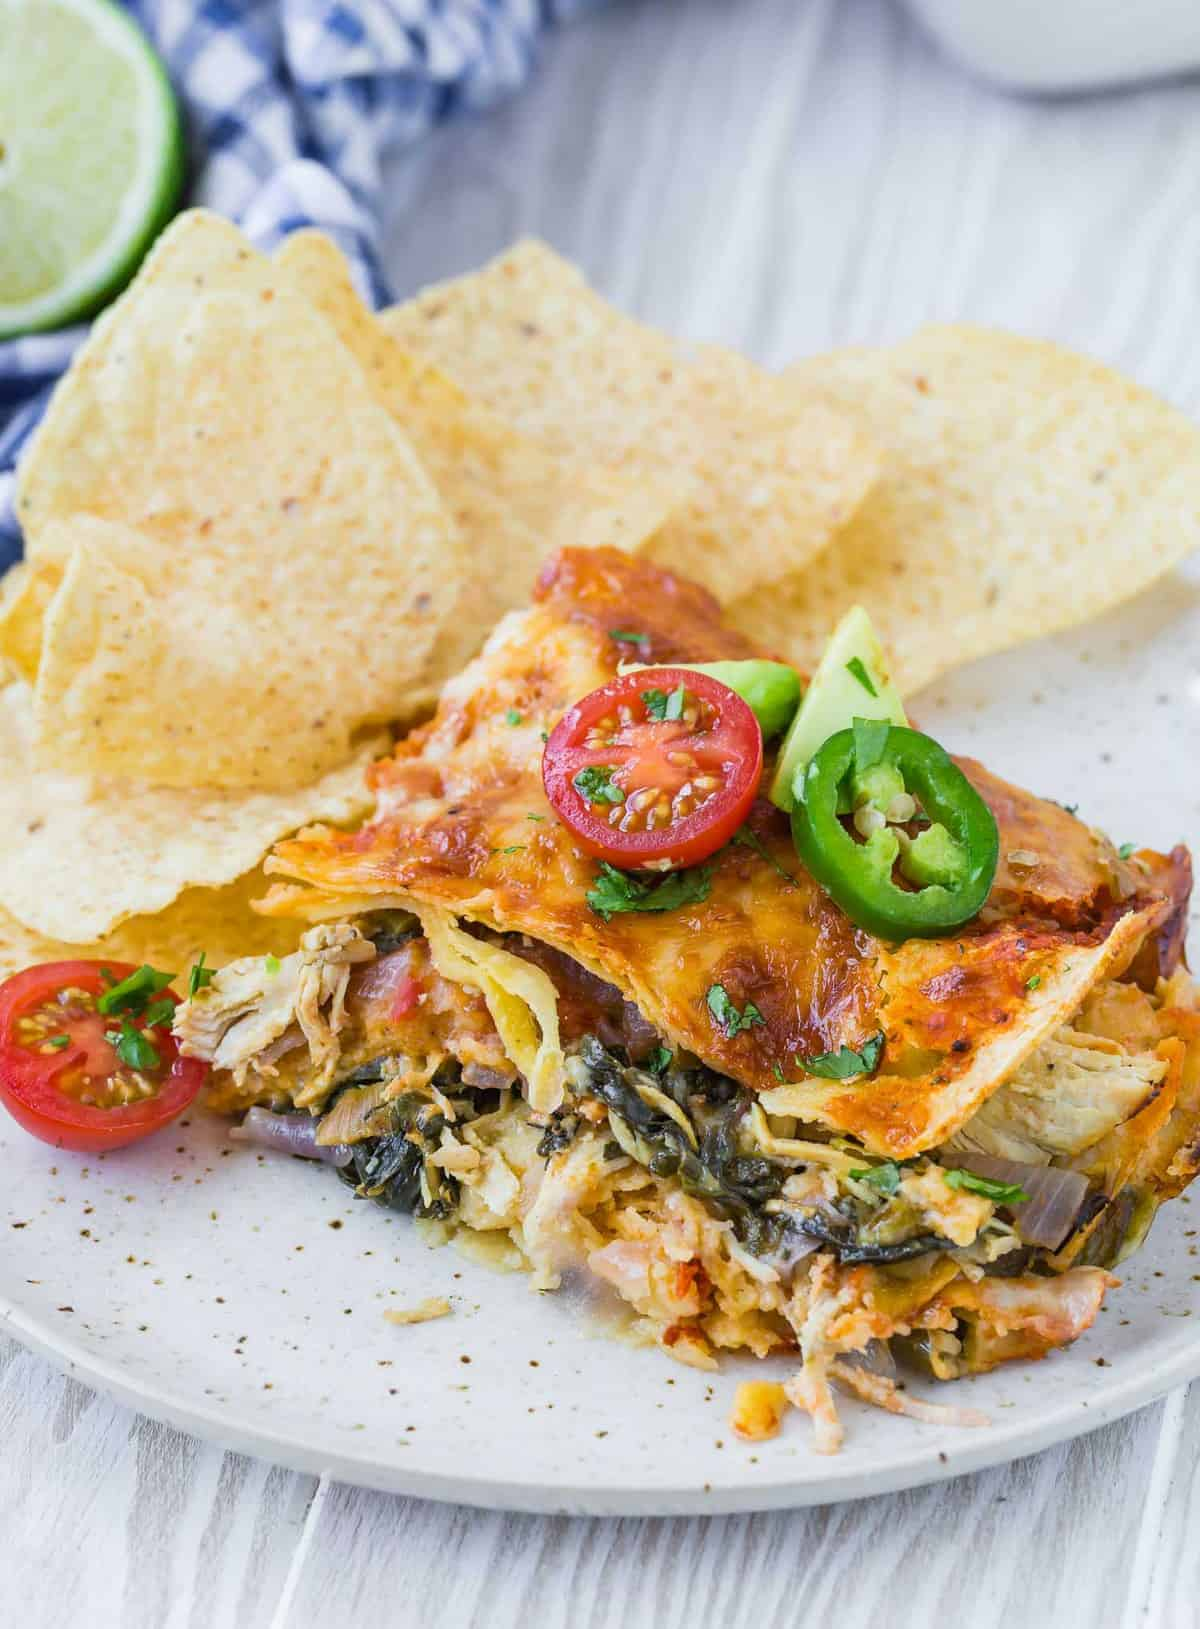 Slice of Mexican lasagna with greens on a plate with tortilla chips.